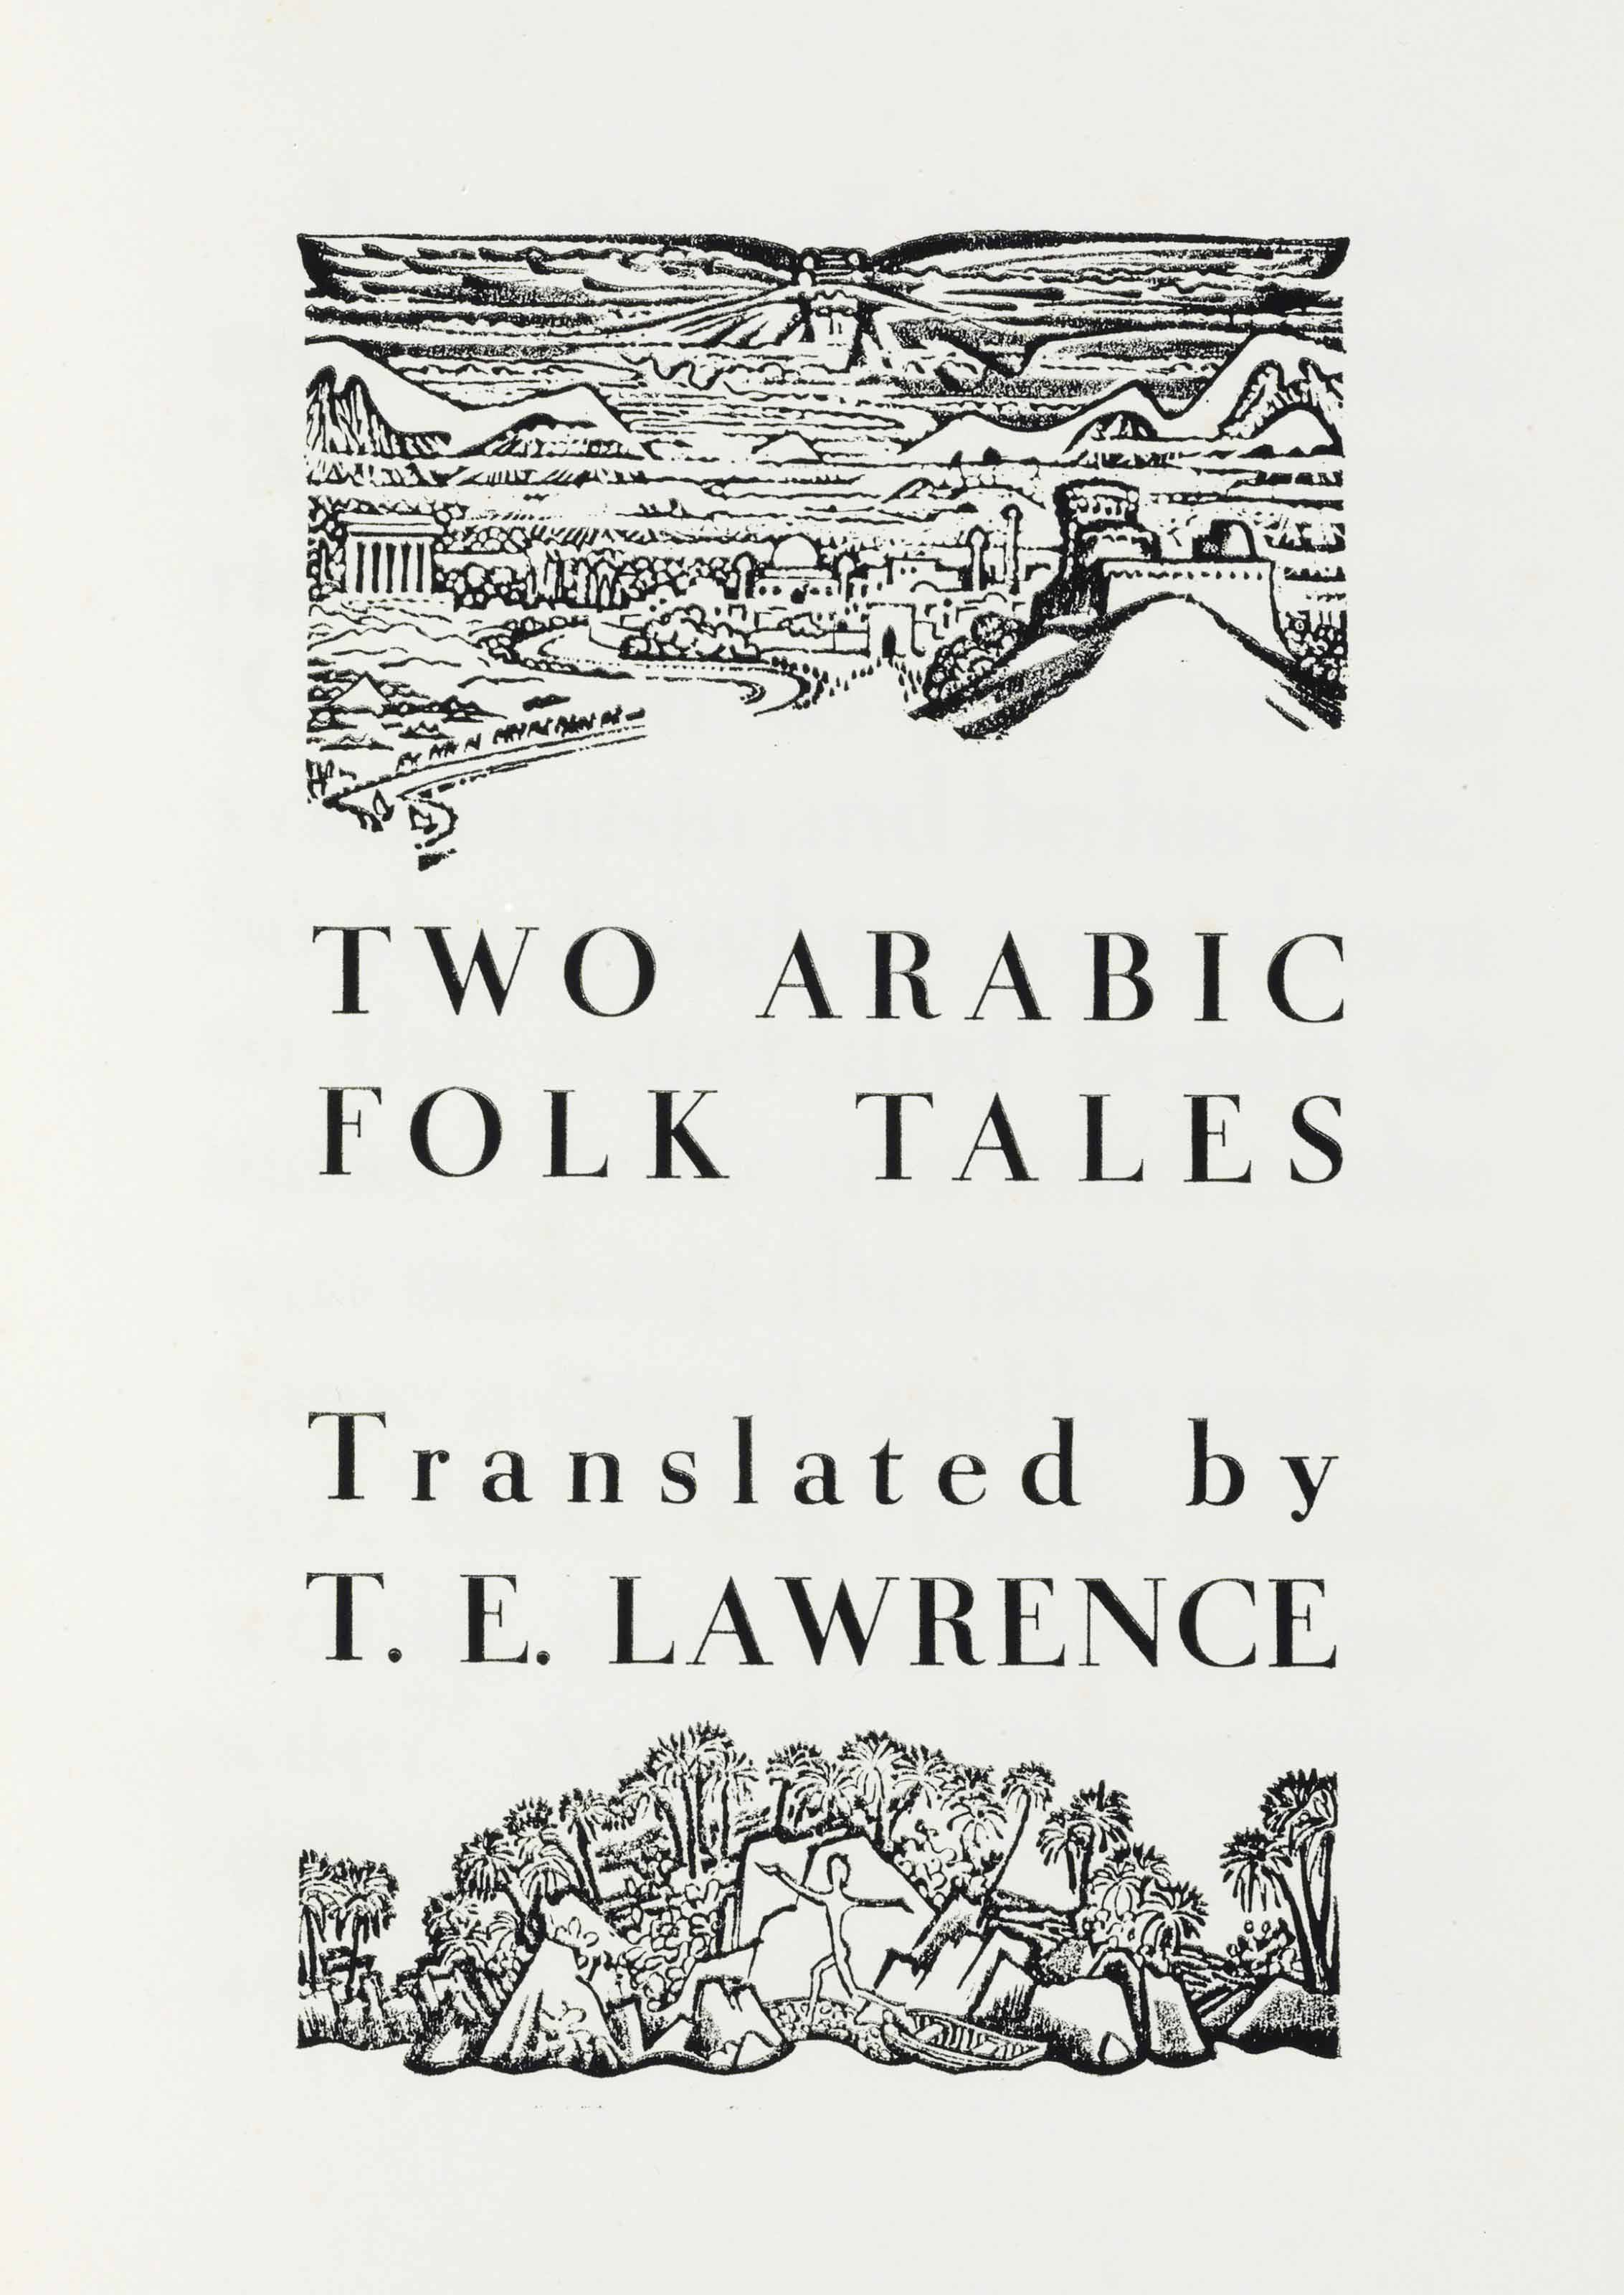 LAWRENCE, T. E., translator. Two Arabic Folk Tales. [London]: The Corvinus Press, December 1937 [but 1938].